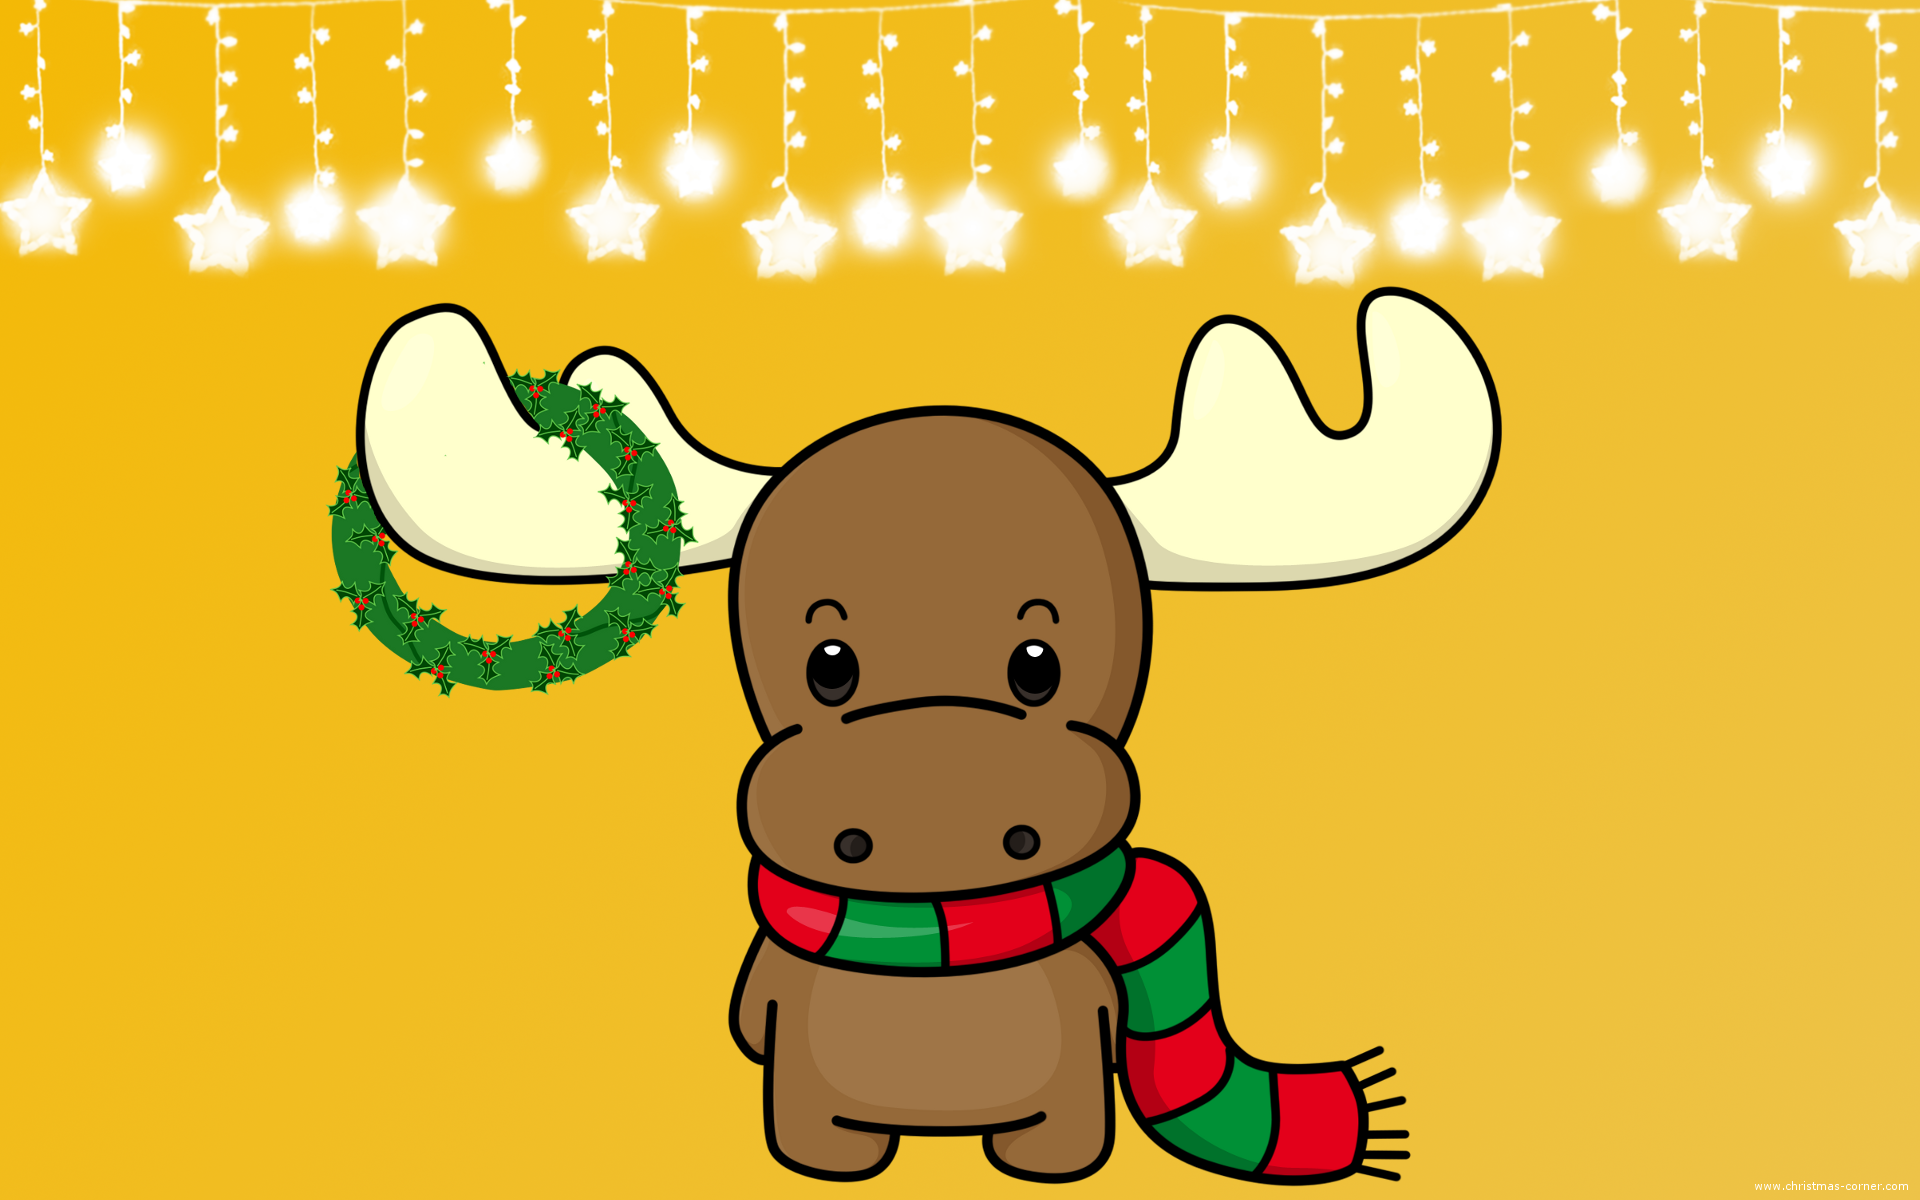 Cute Moose Wallpaper